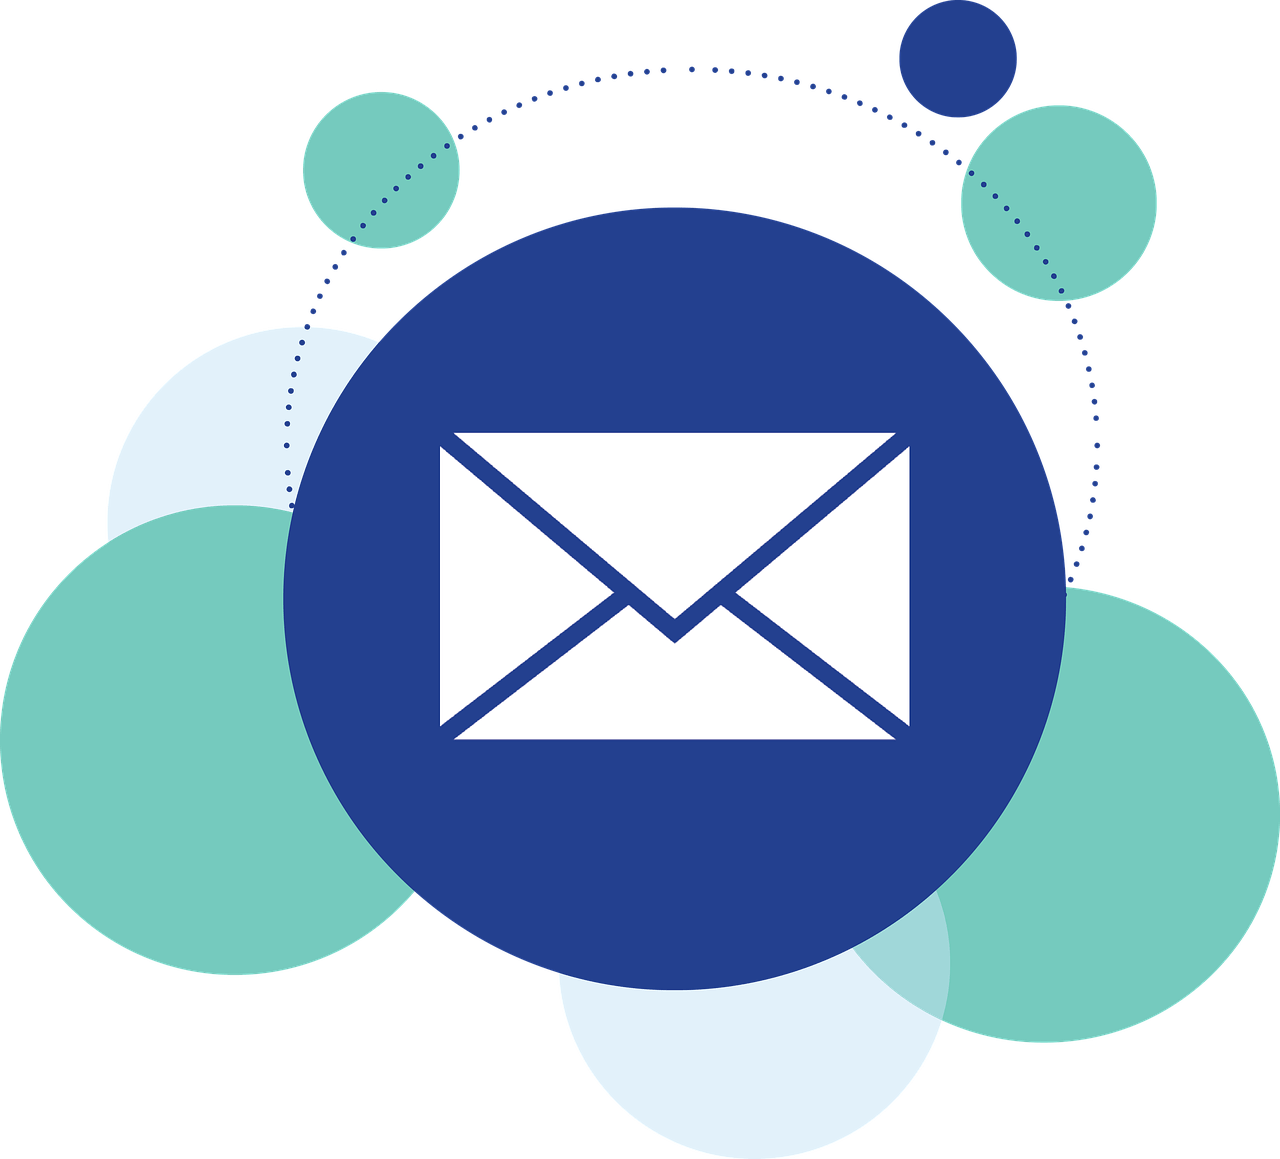 estrategia de email marketing efectiva